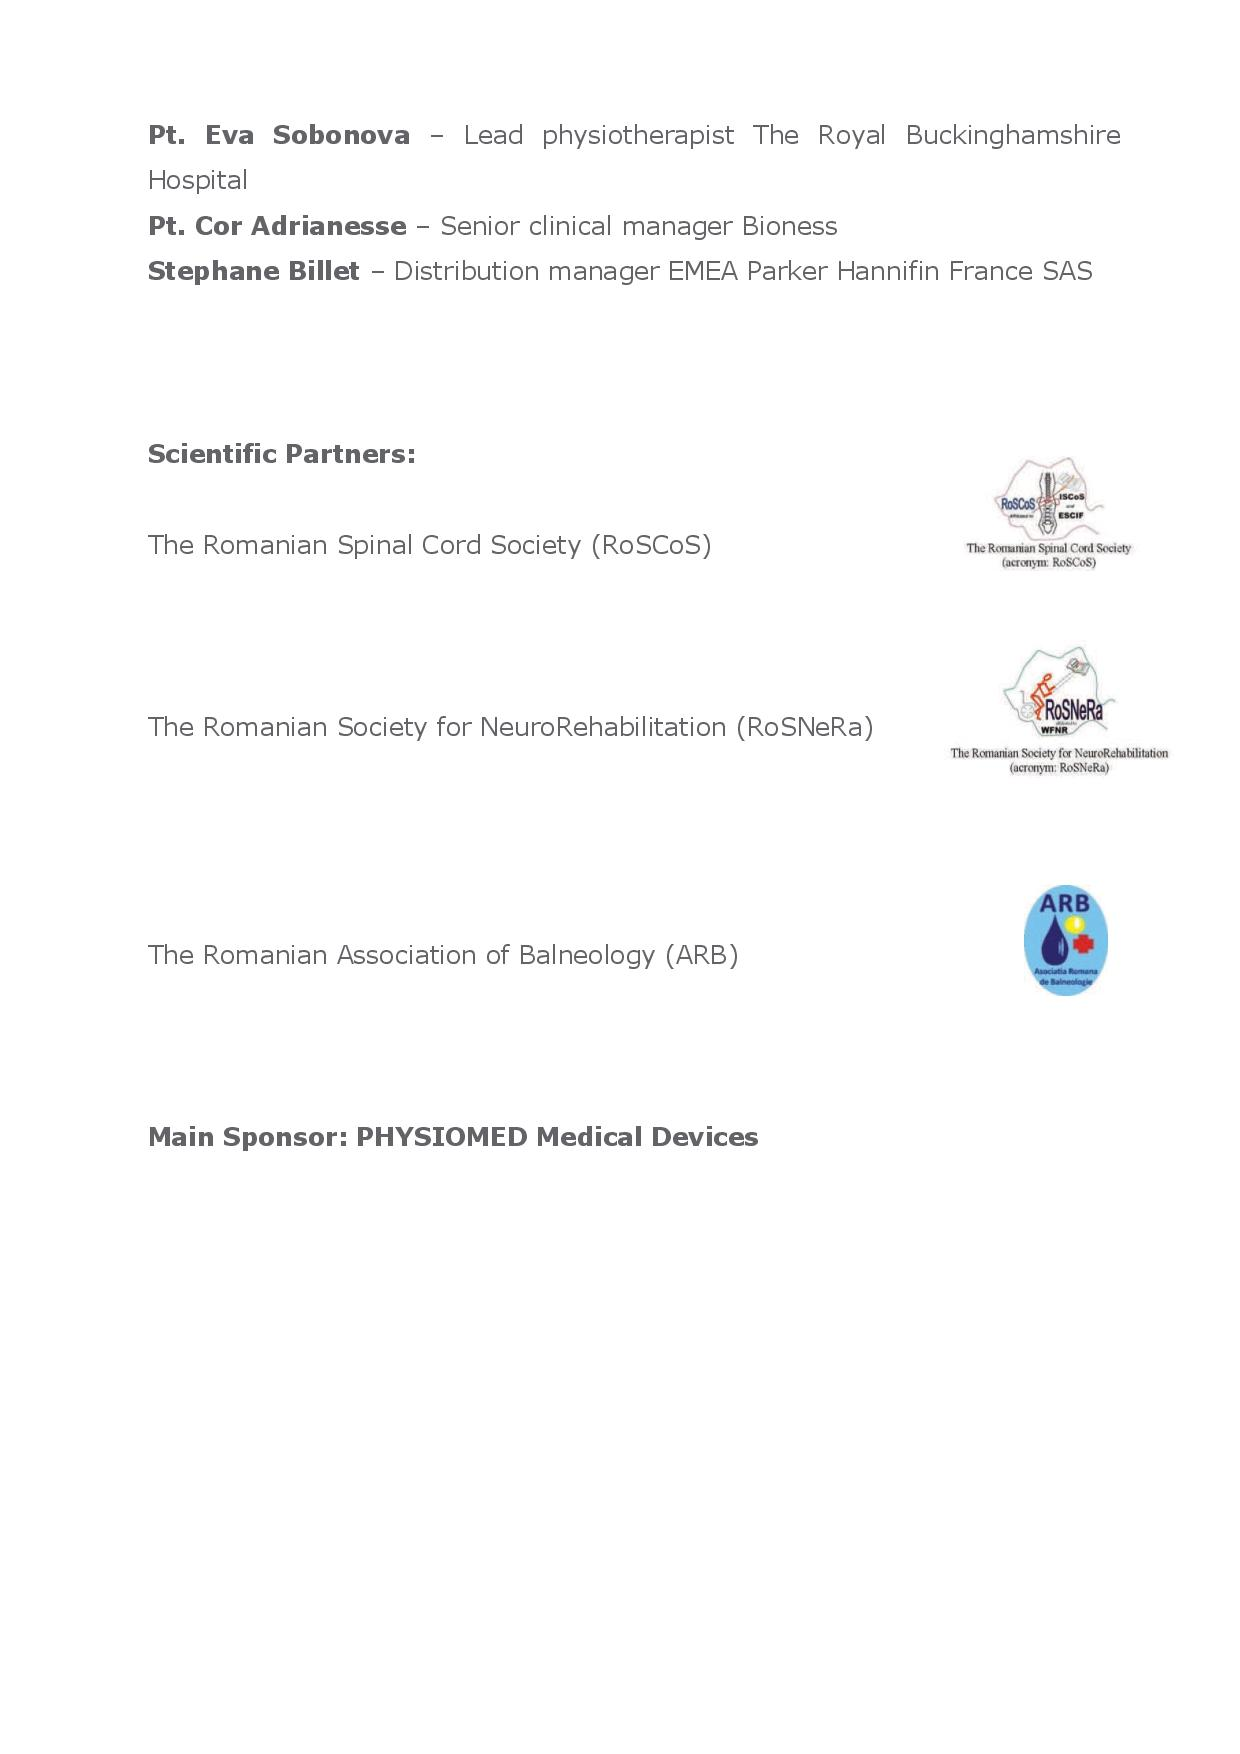 ADVANCED NEUROREHABILITATION PROCEDURES - 2nd ACADEMIC SESSION 19-20 October 2017, Bucharest pg5/5